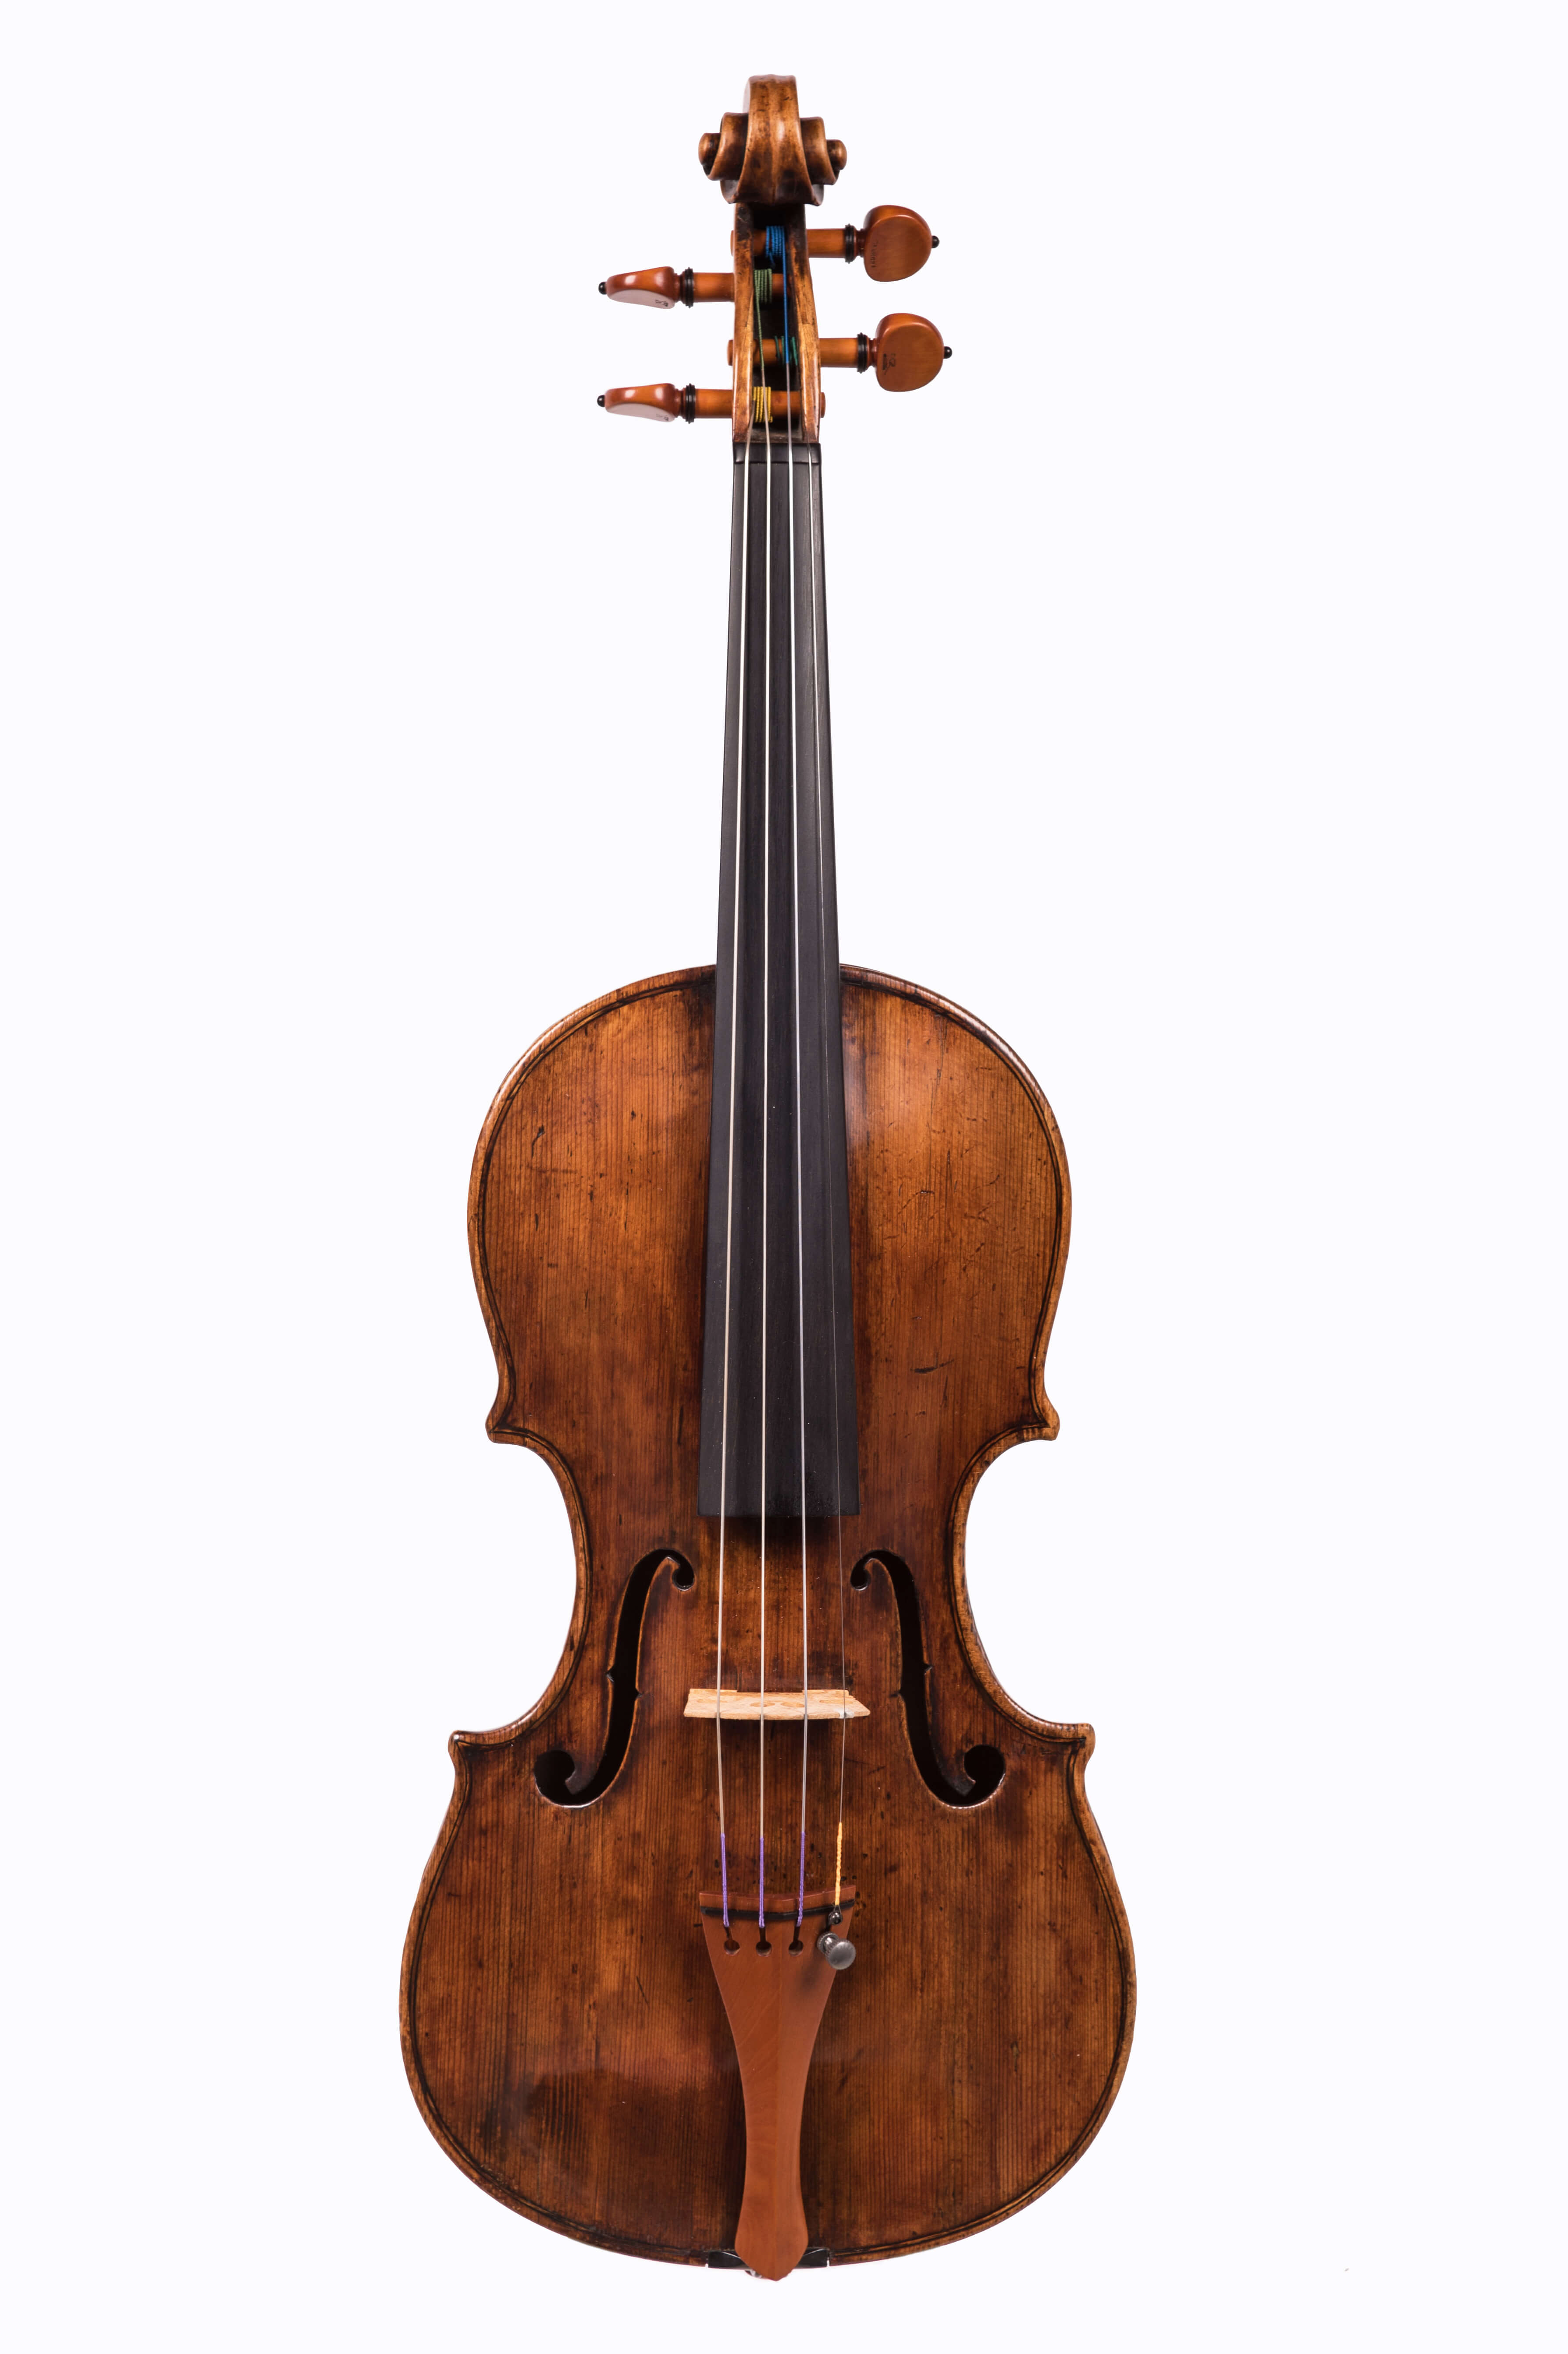 Violin by Giovanni Battista Ceruti, Cremona, c. 1795